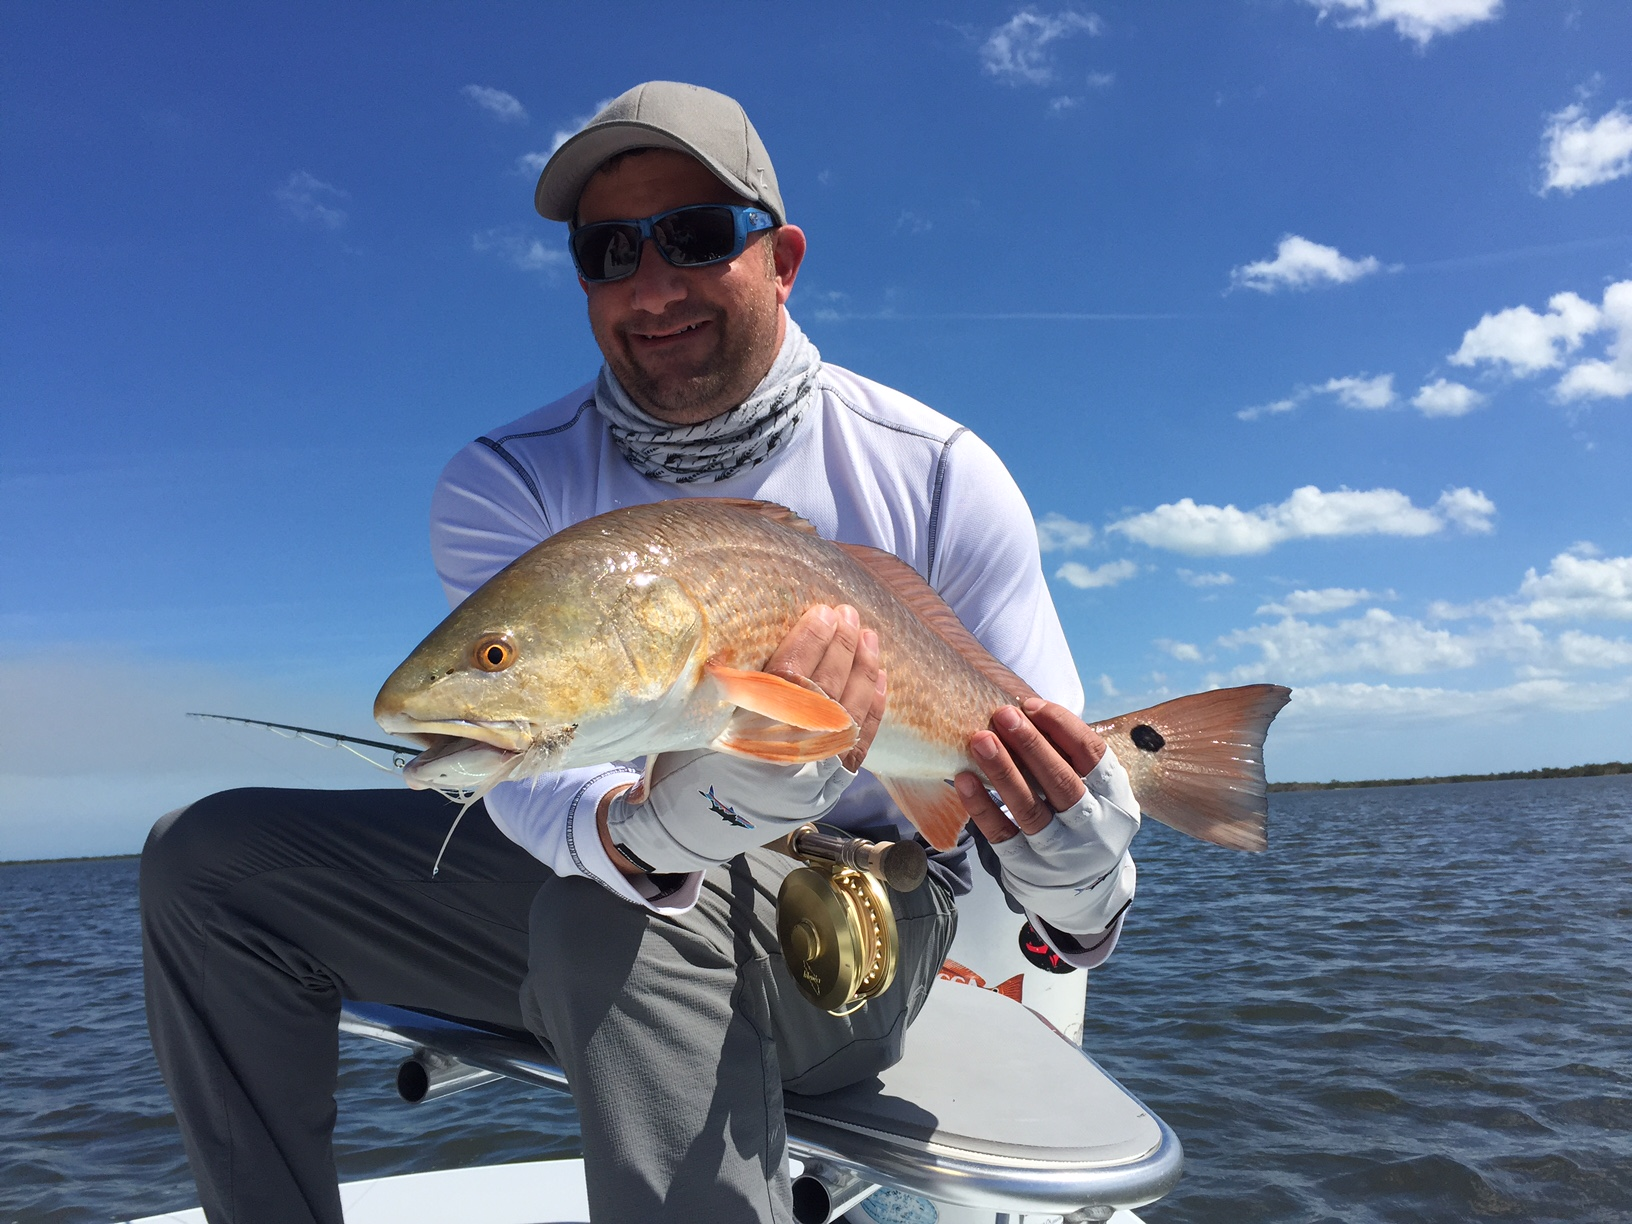 Max Salzburg with a redfish in Mosquito Lagoon near Titusville, Florida. Photo by Captain Scott MacCalla.